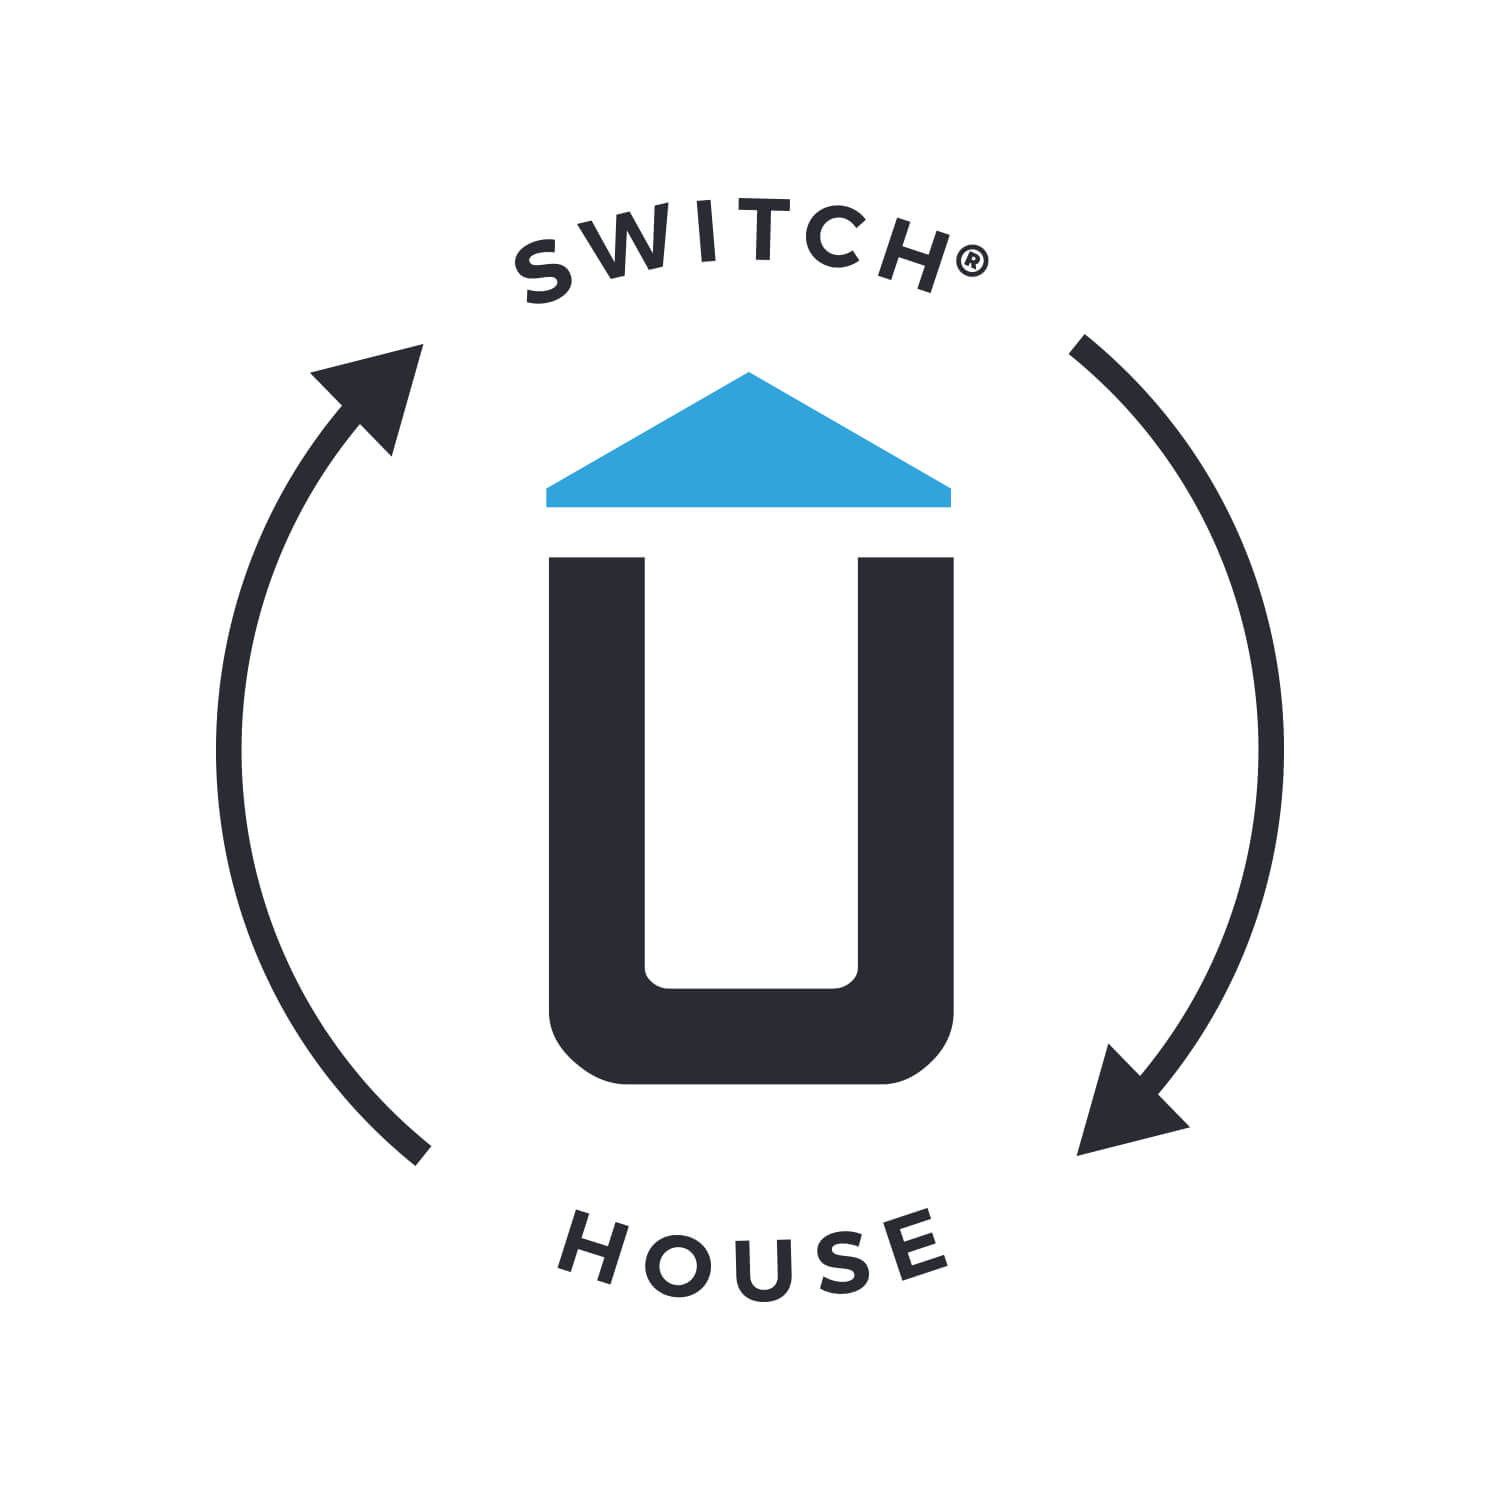 Kopen via <span>switch house formule</span>?